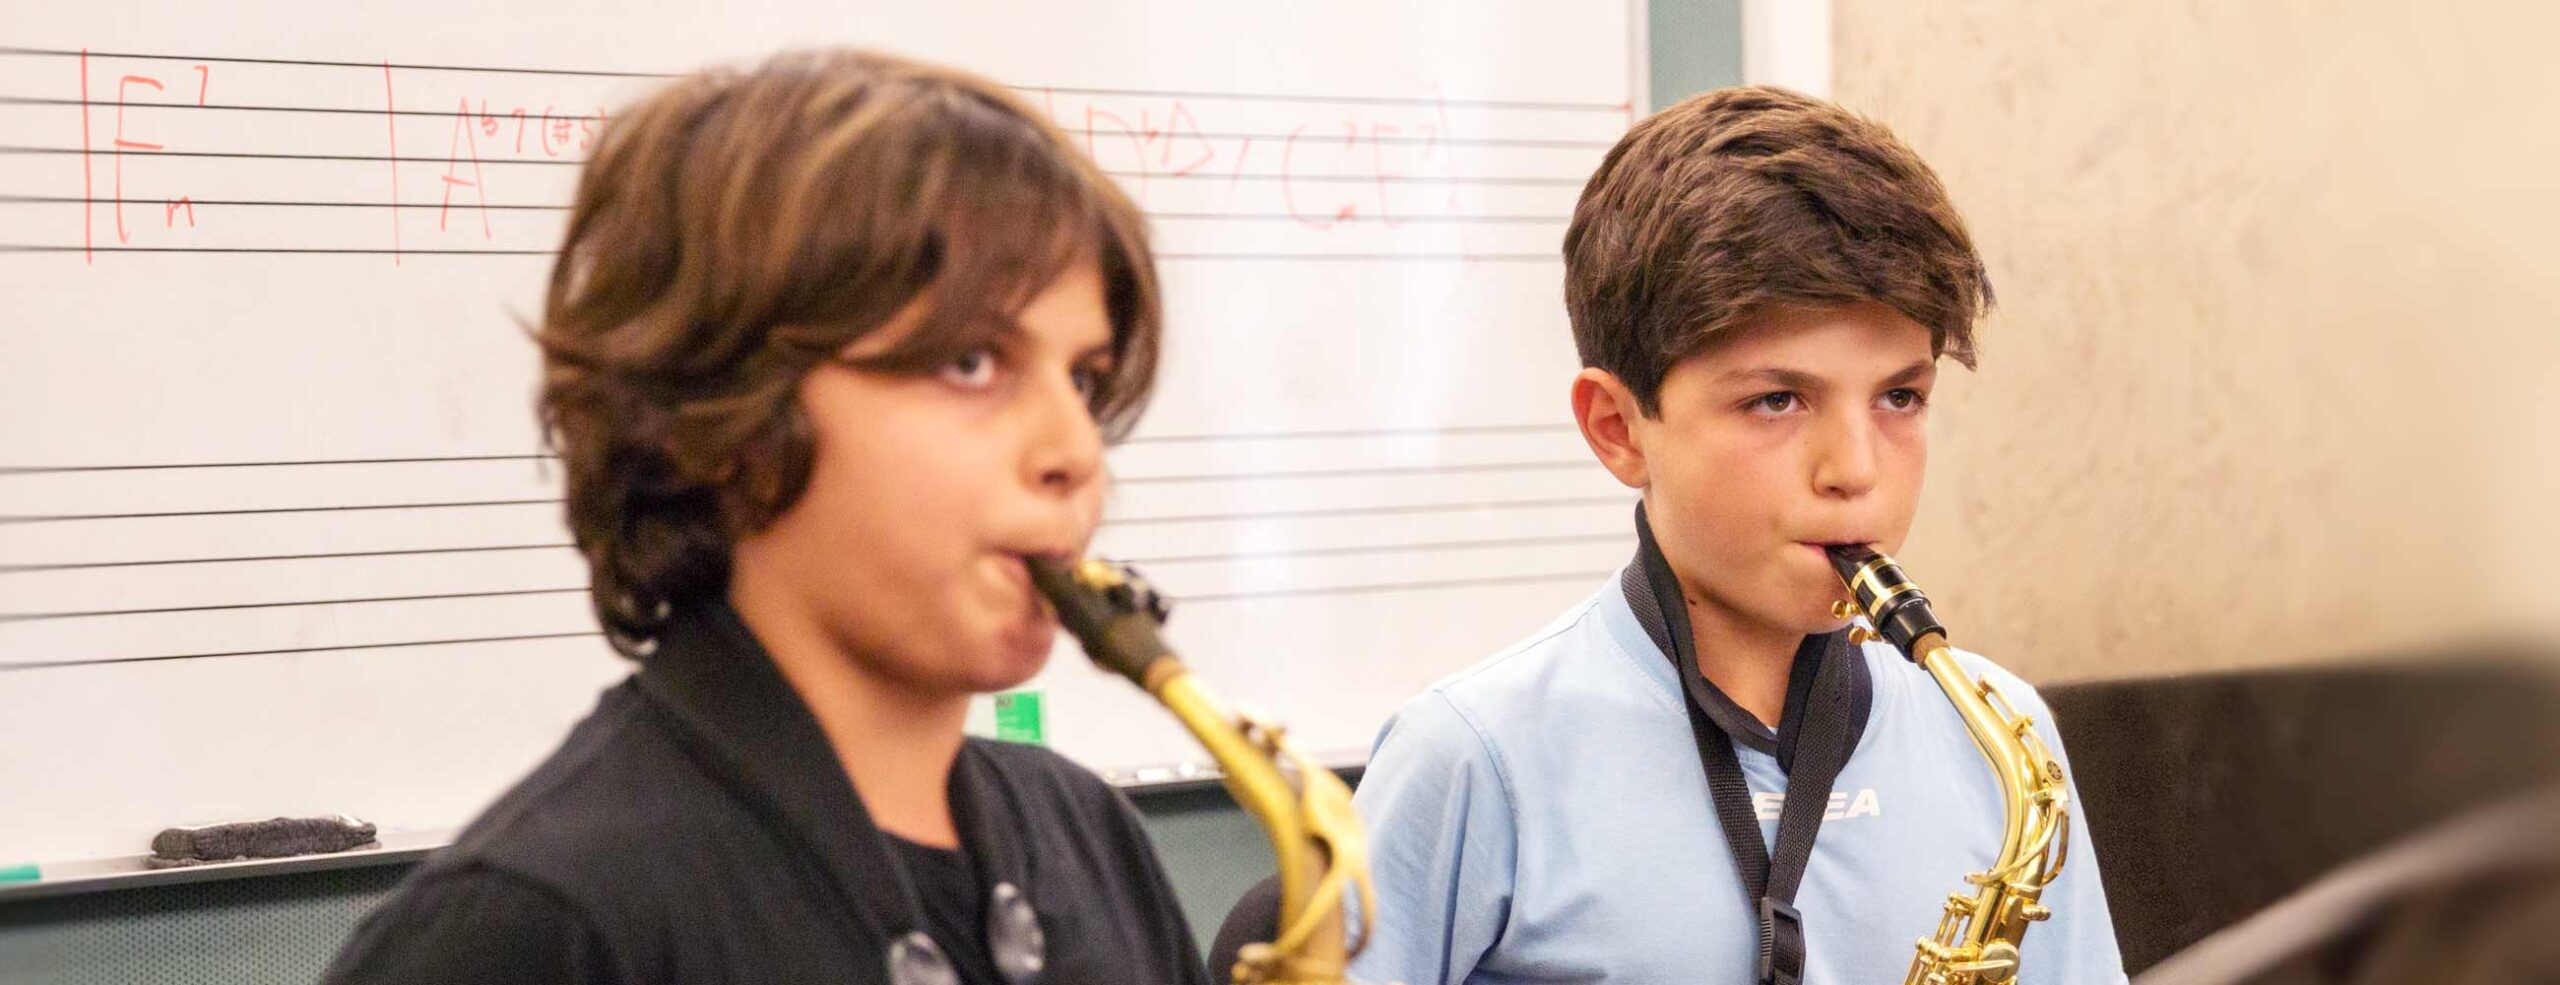 Boys playing saxophone